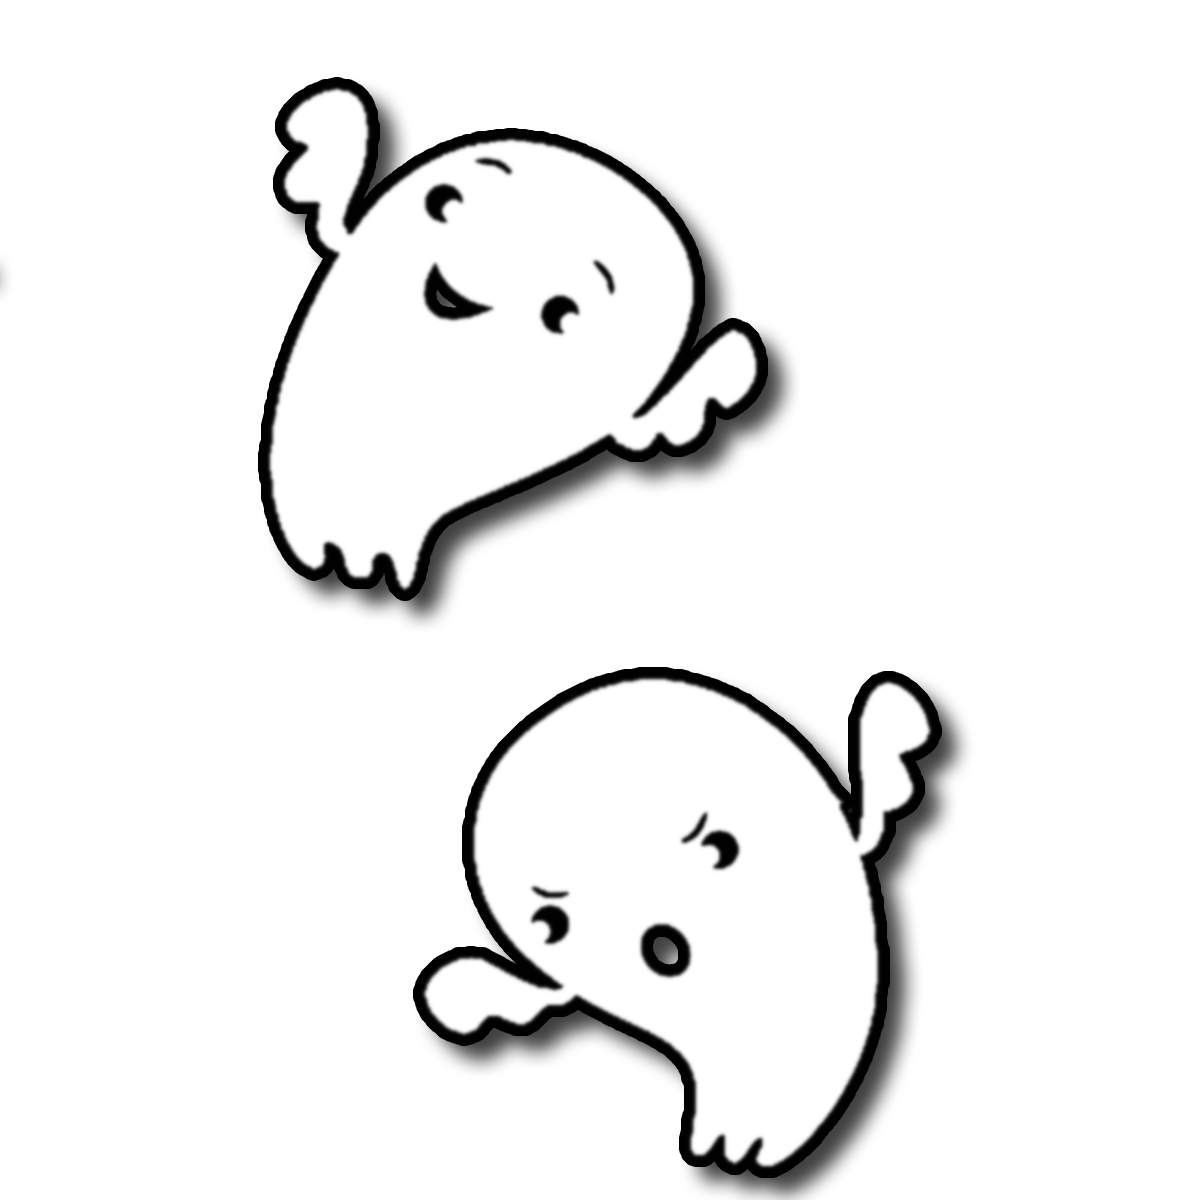 1200x1200 Images For Happy Halloween Ghost Clipart Image